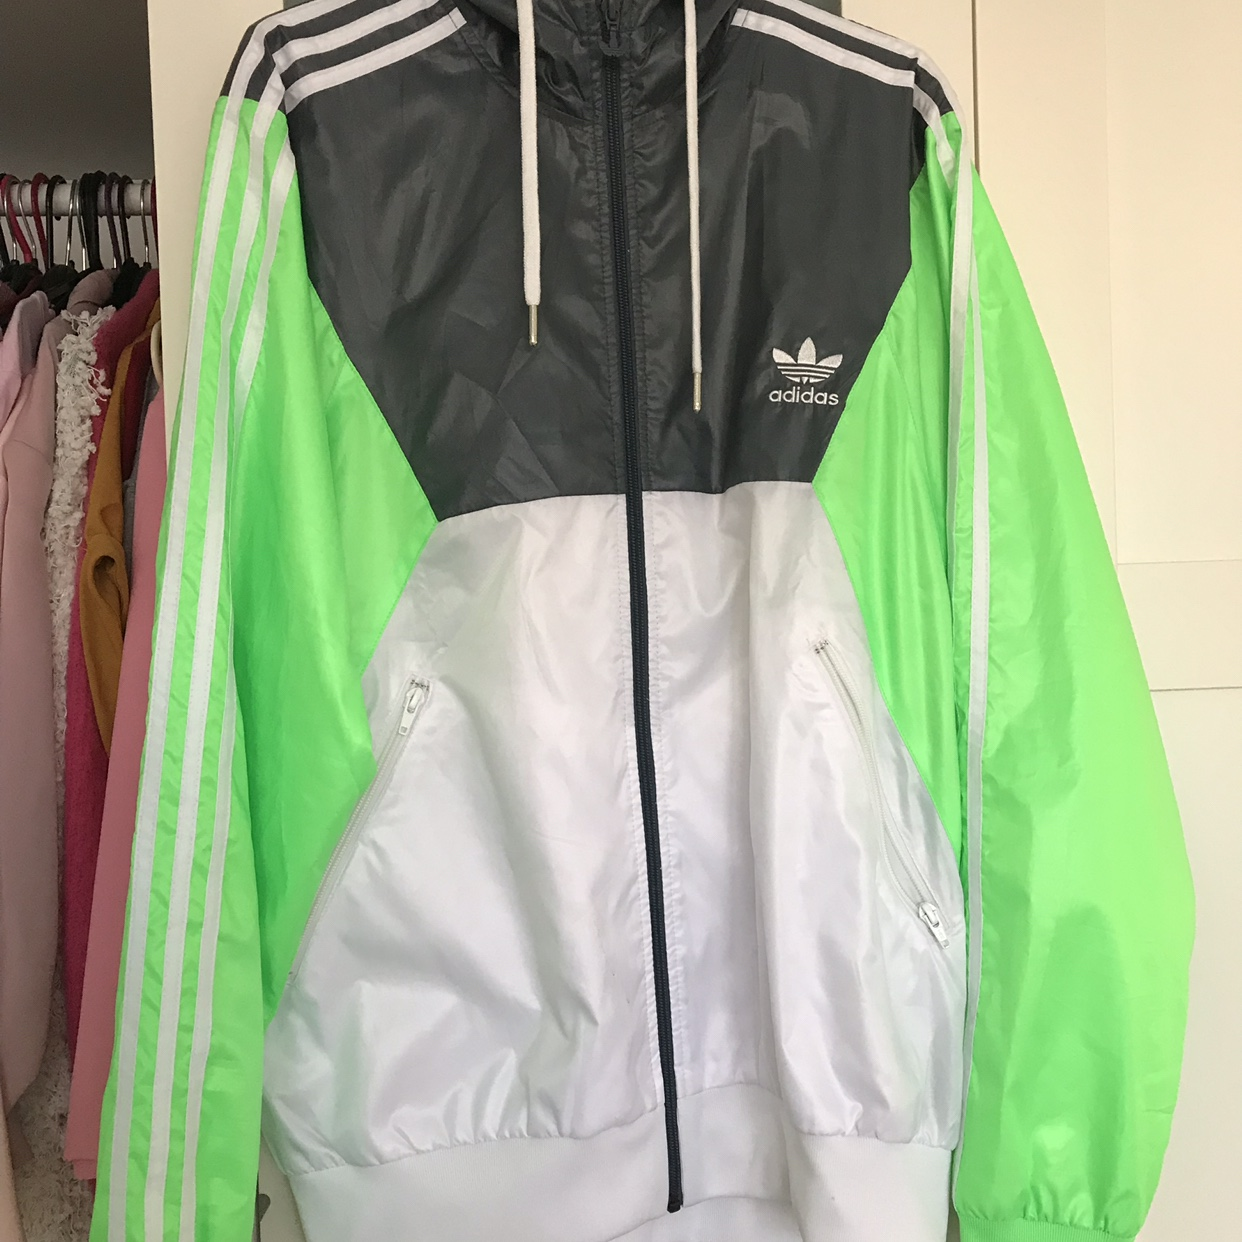 Adidas originals neon jacket Worn once so perfect Depop